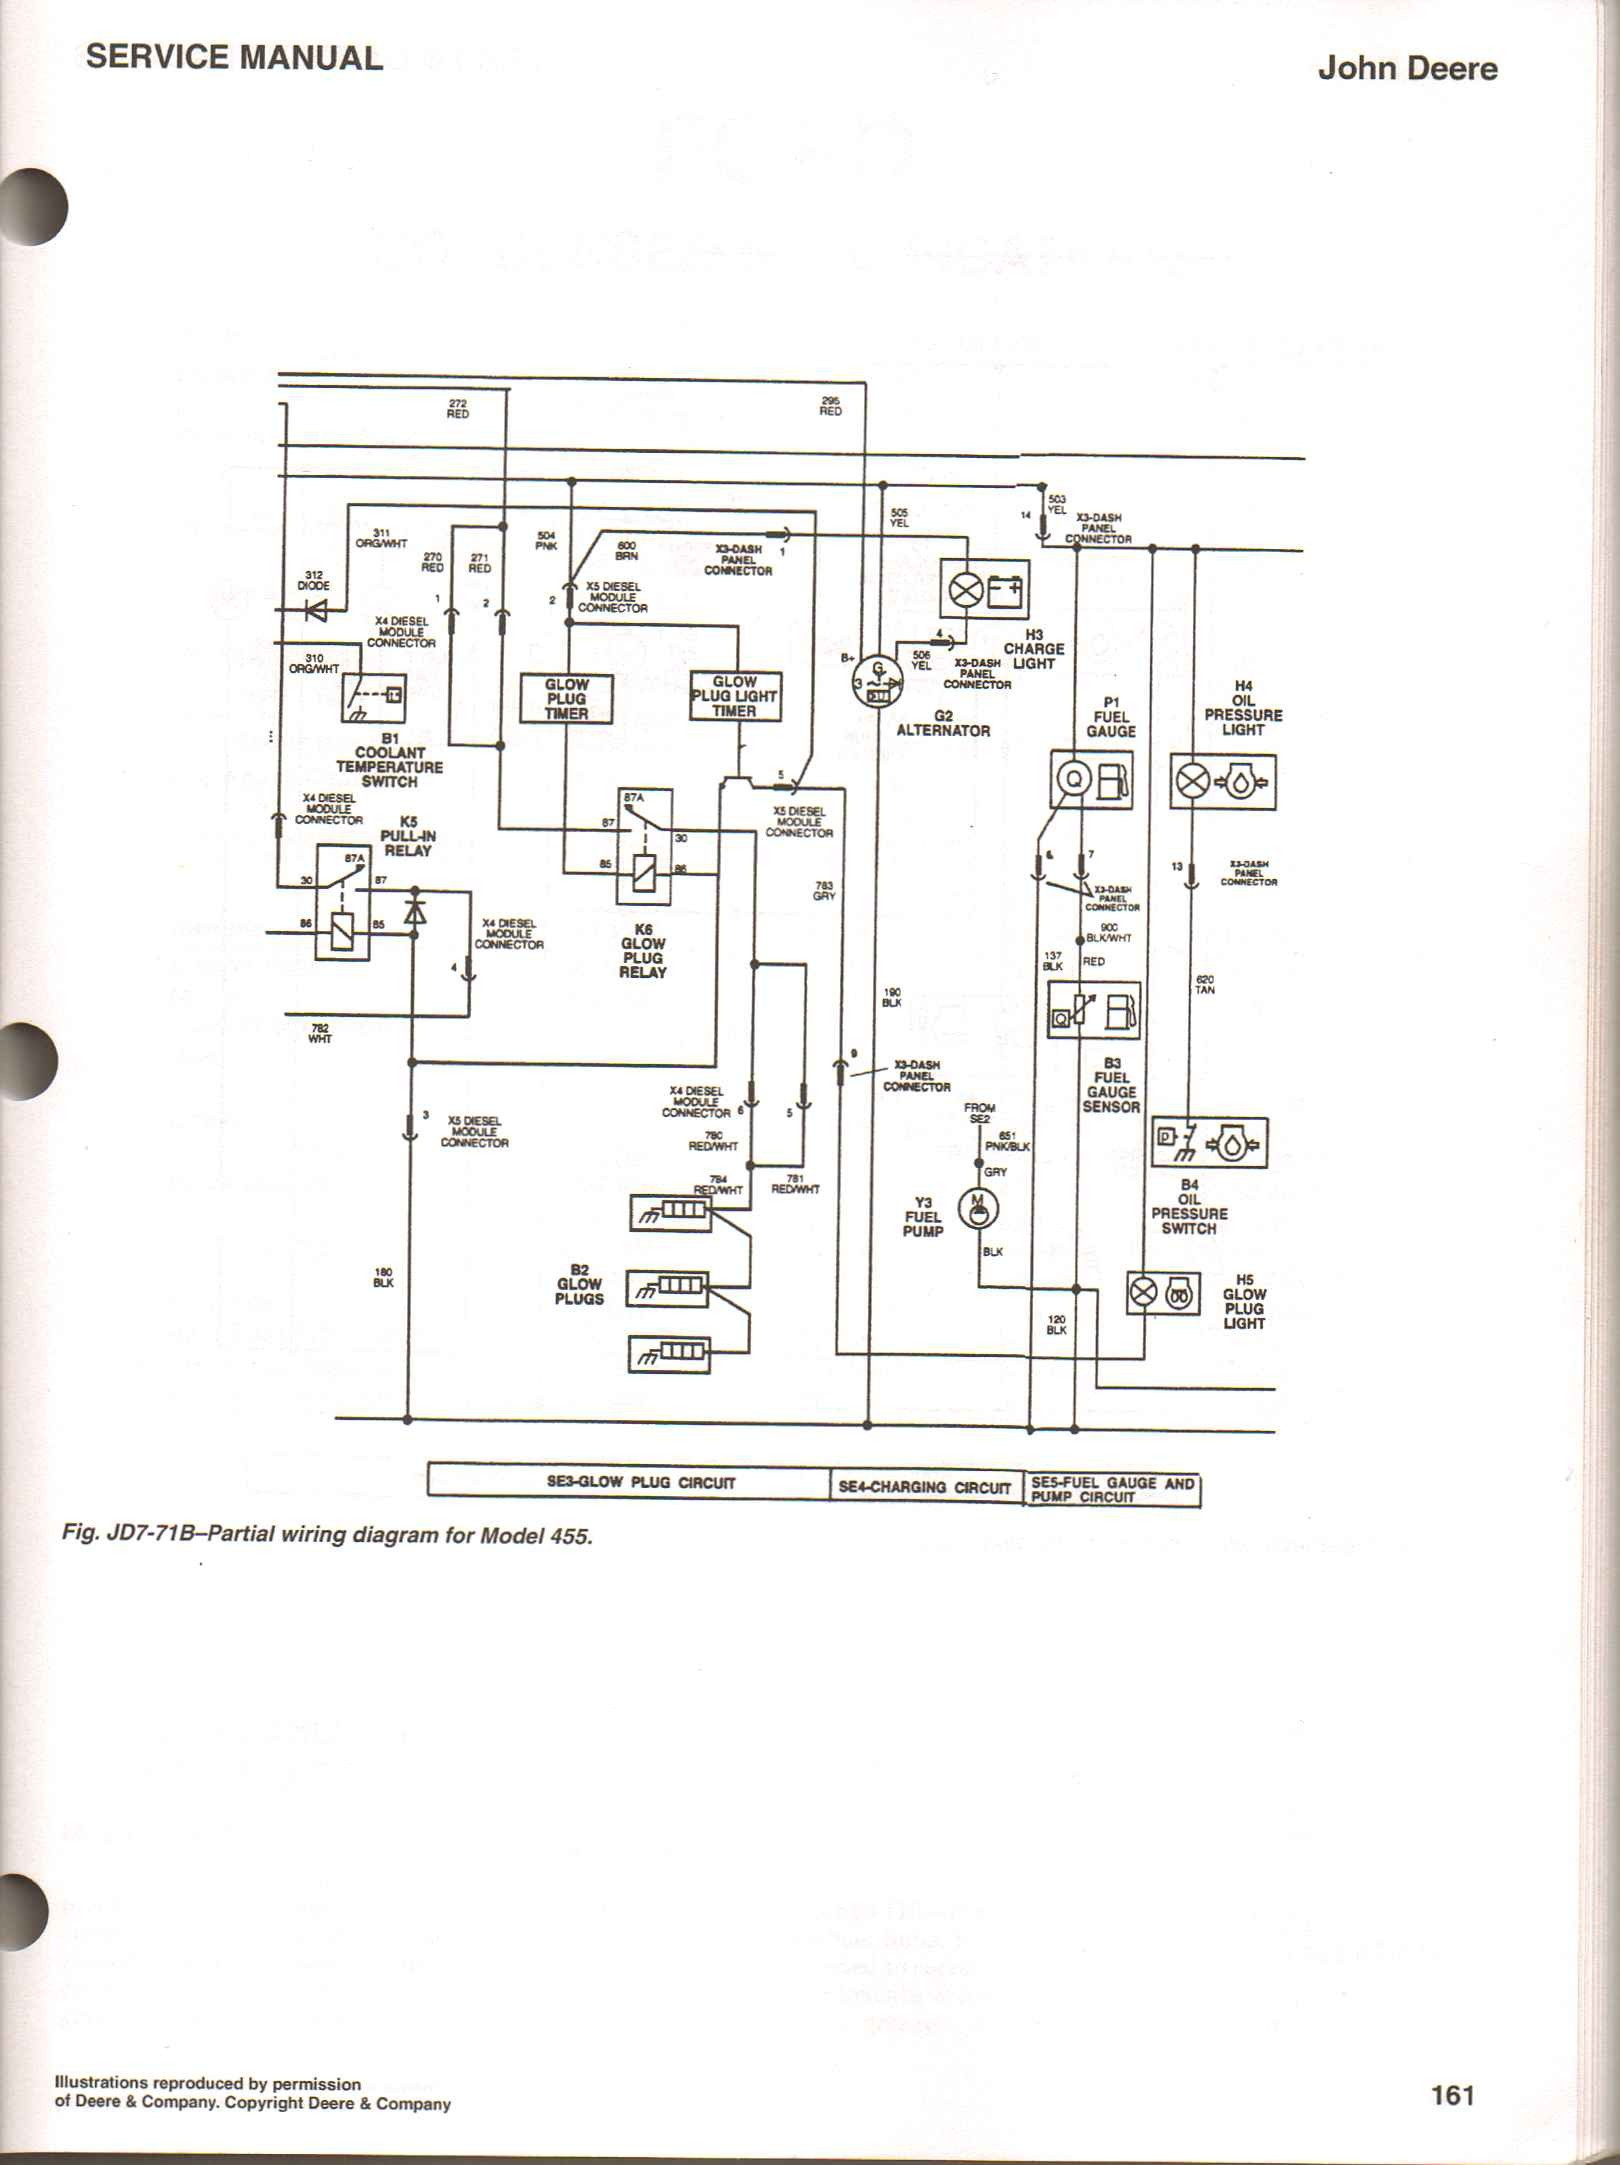 John Deere 1445 Wiring Diagram John Deere L110 Wiring Diagram  Citruscyclecenter Of John Deere 1445 Wiring